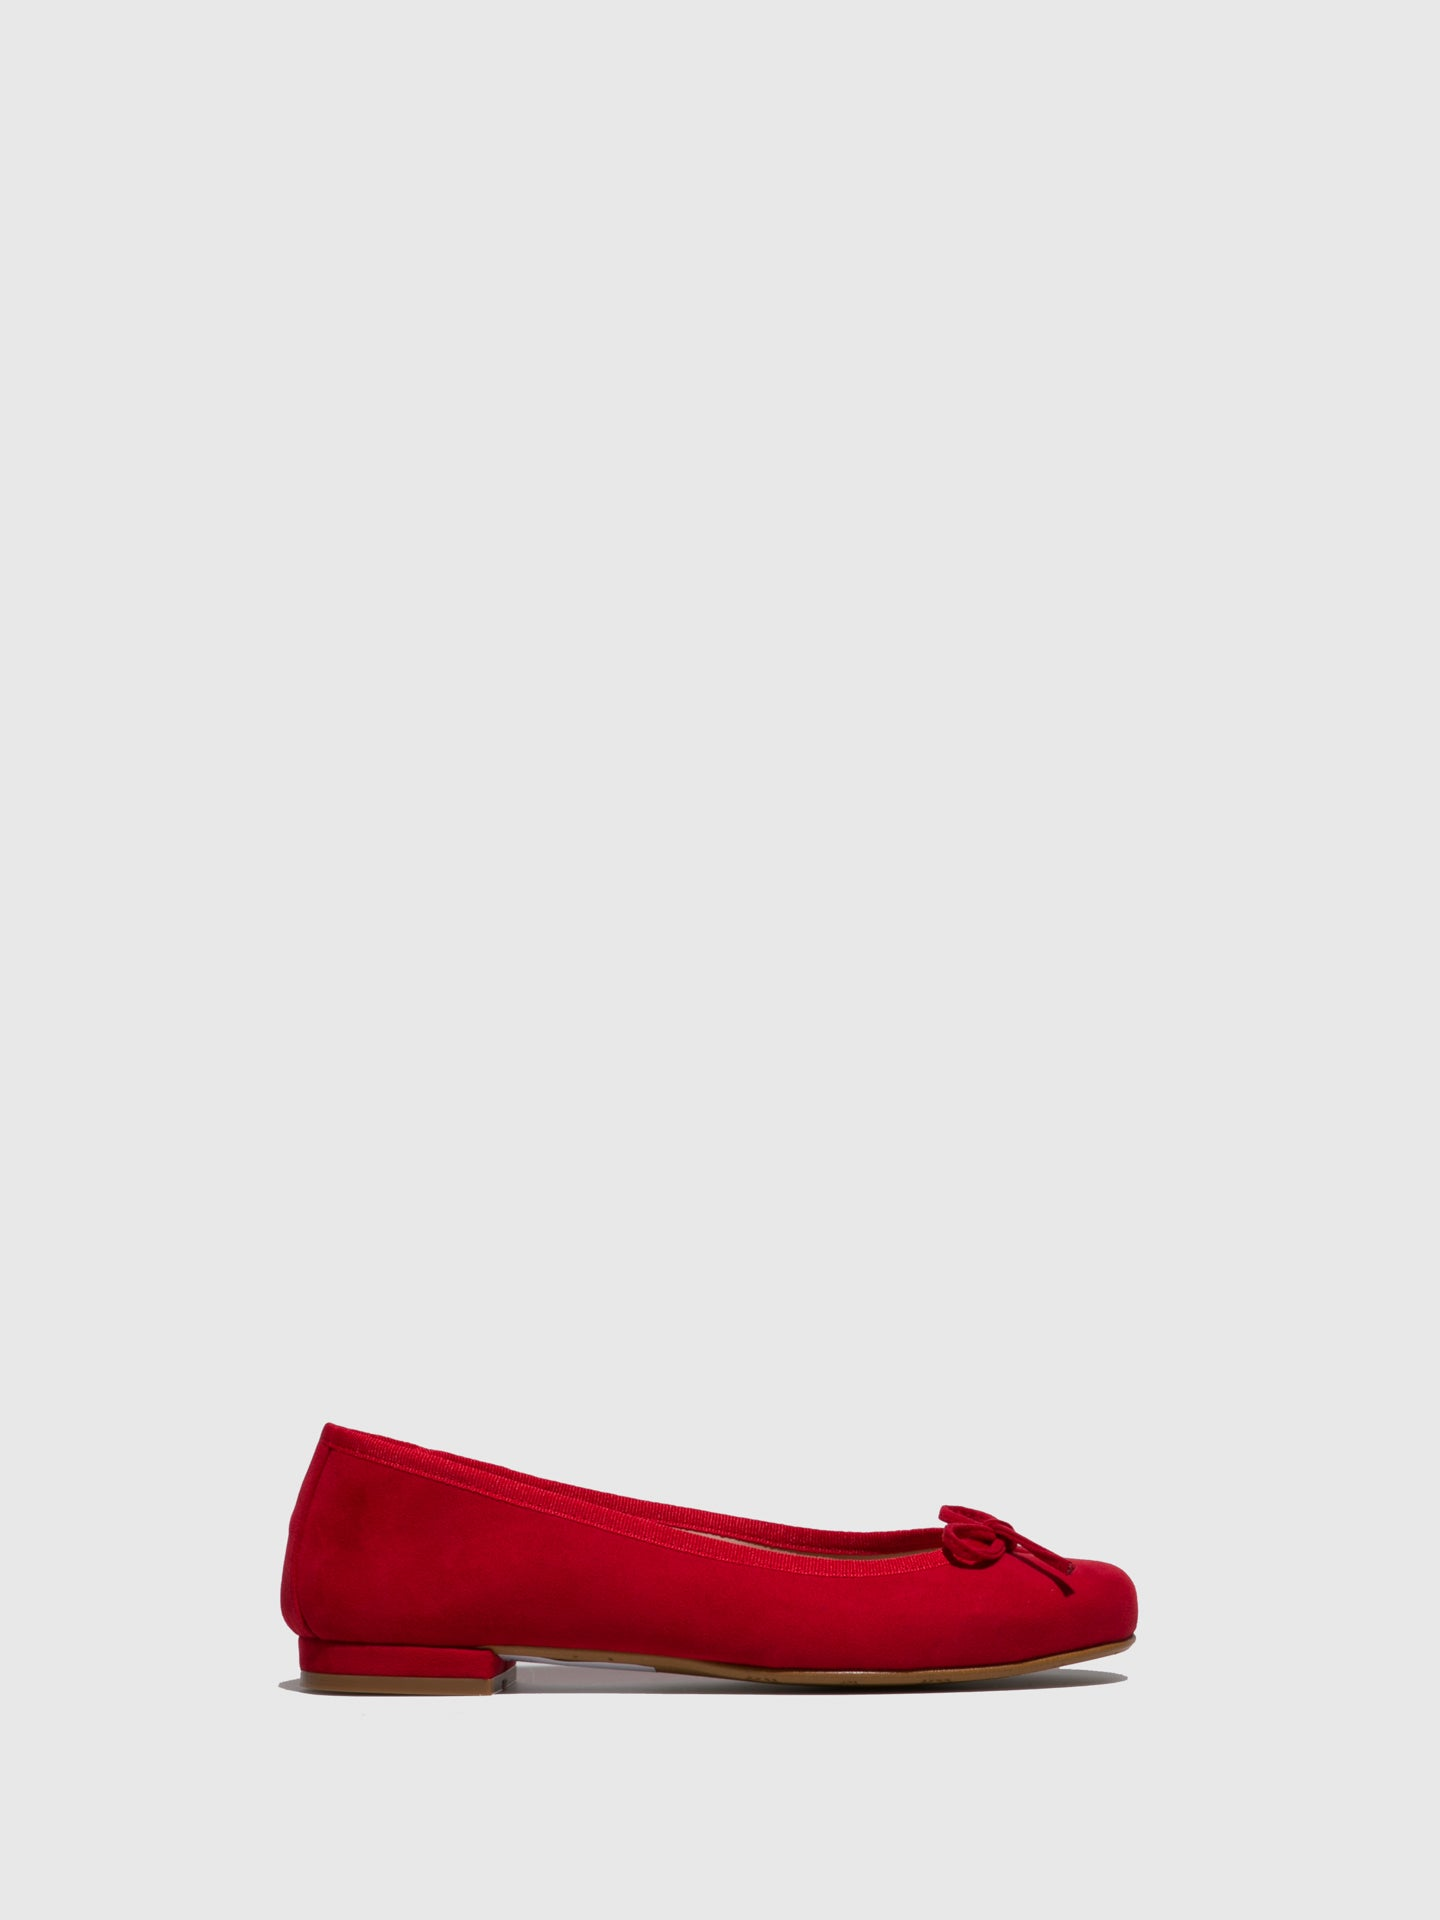 Foreva Red Bow Ballerinas